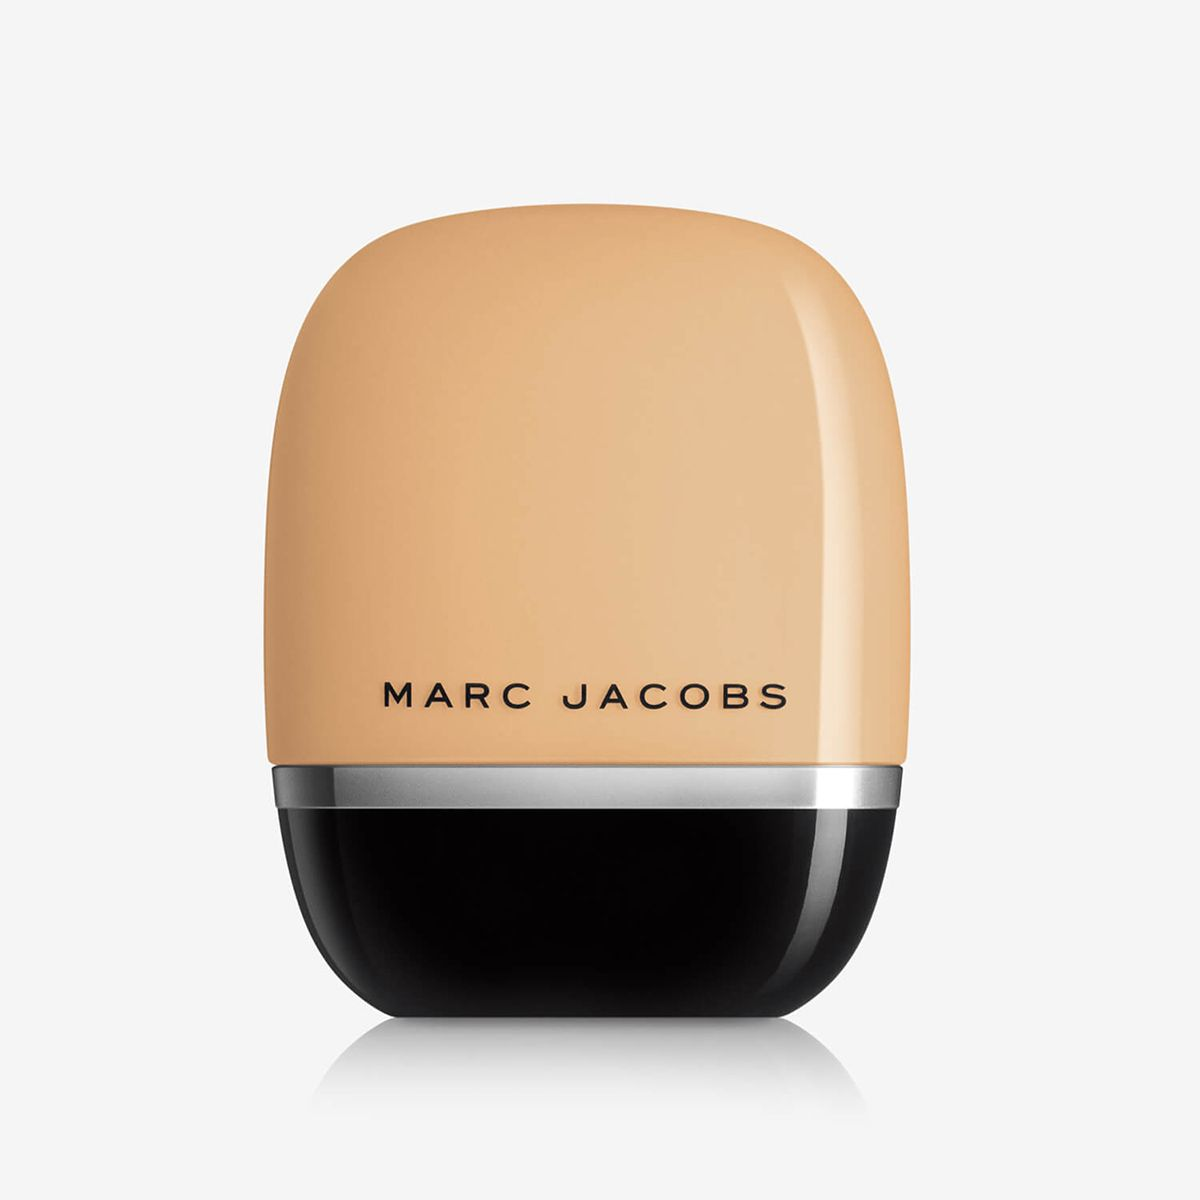 We Tested All The On-Sale Marc Jacobs Beauty Products—These Were the Standouts 14